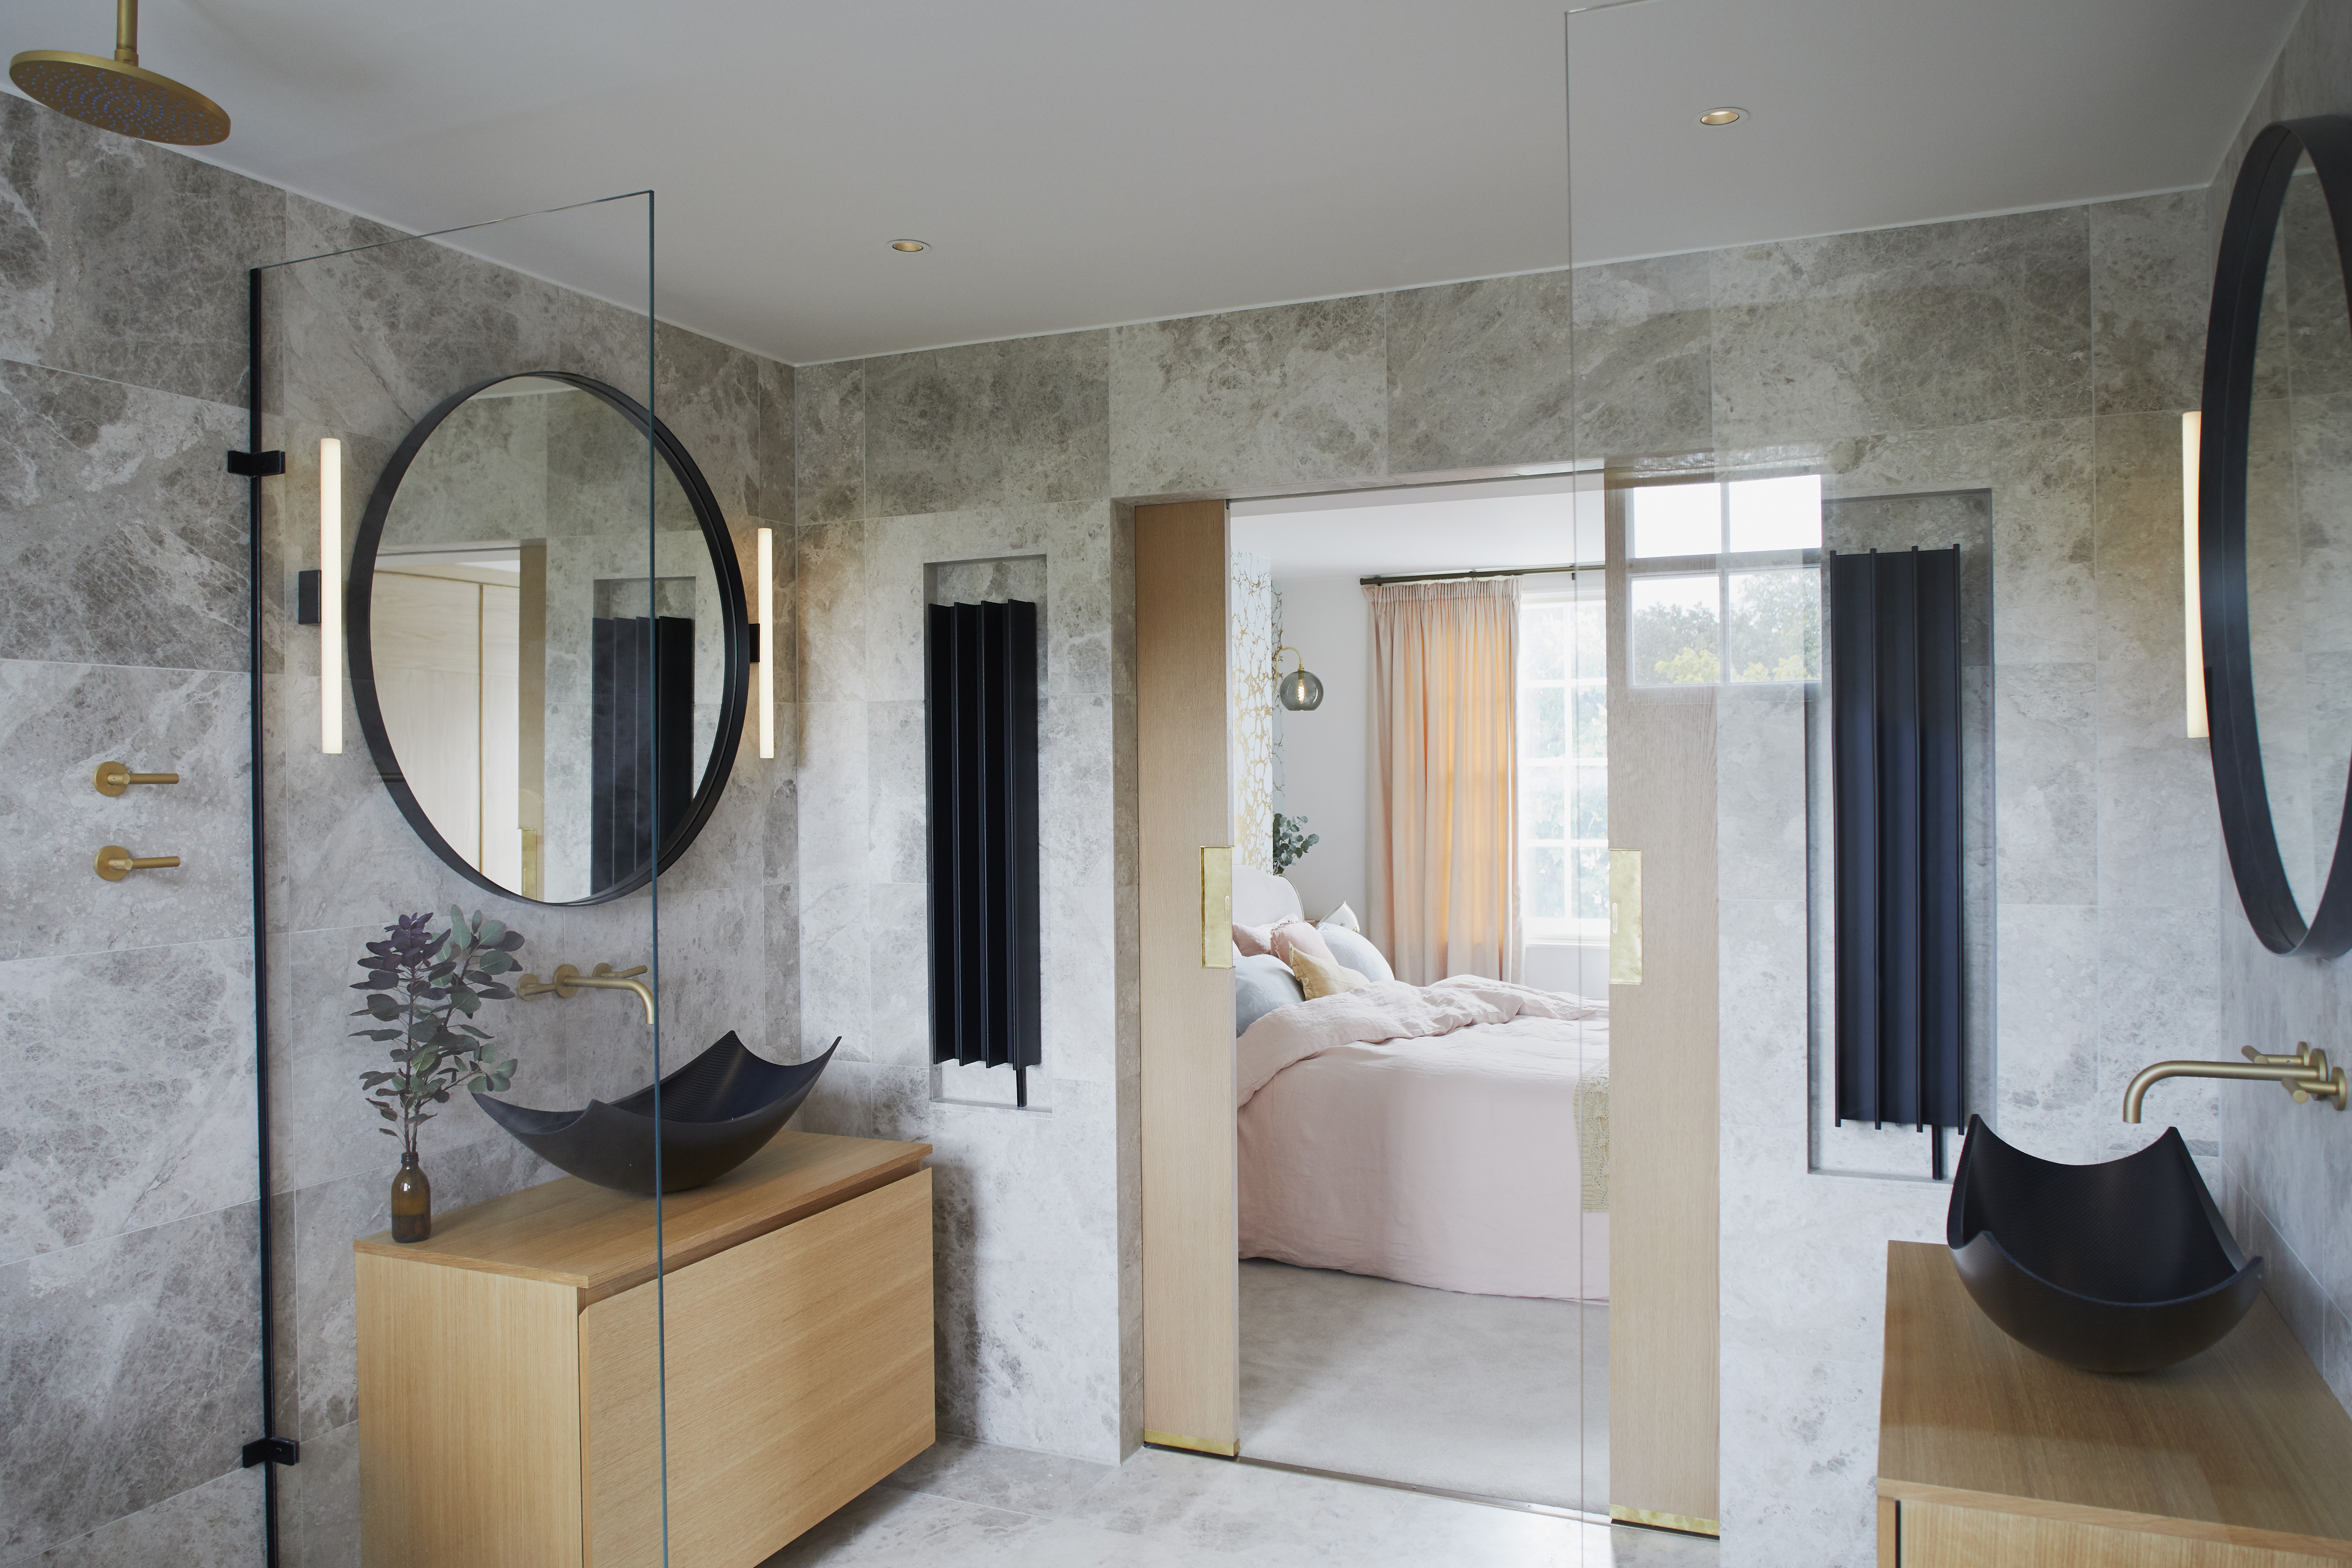 black basin sinks in en suite bathroom with marble walls